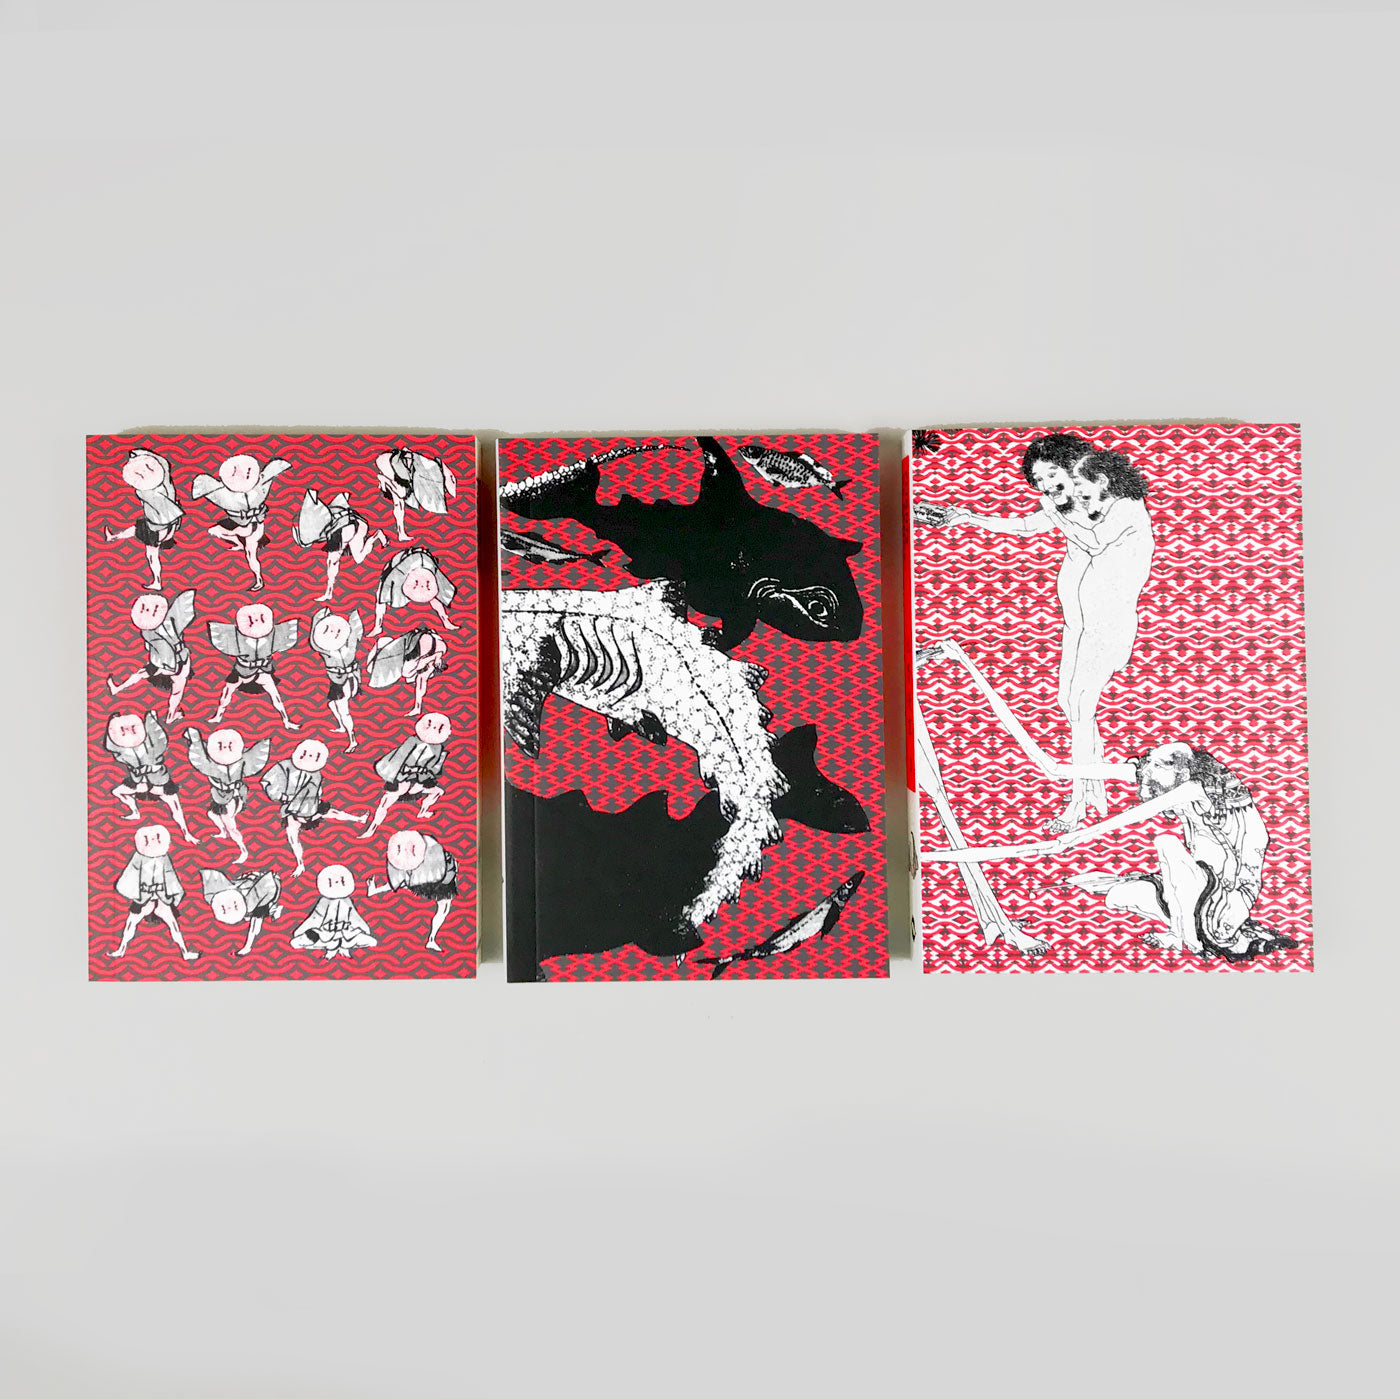 Hokusai Manga - 3 book edition